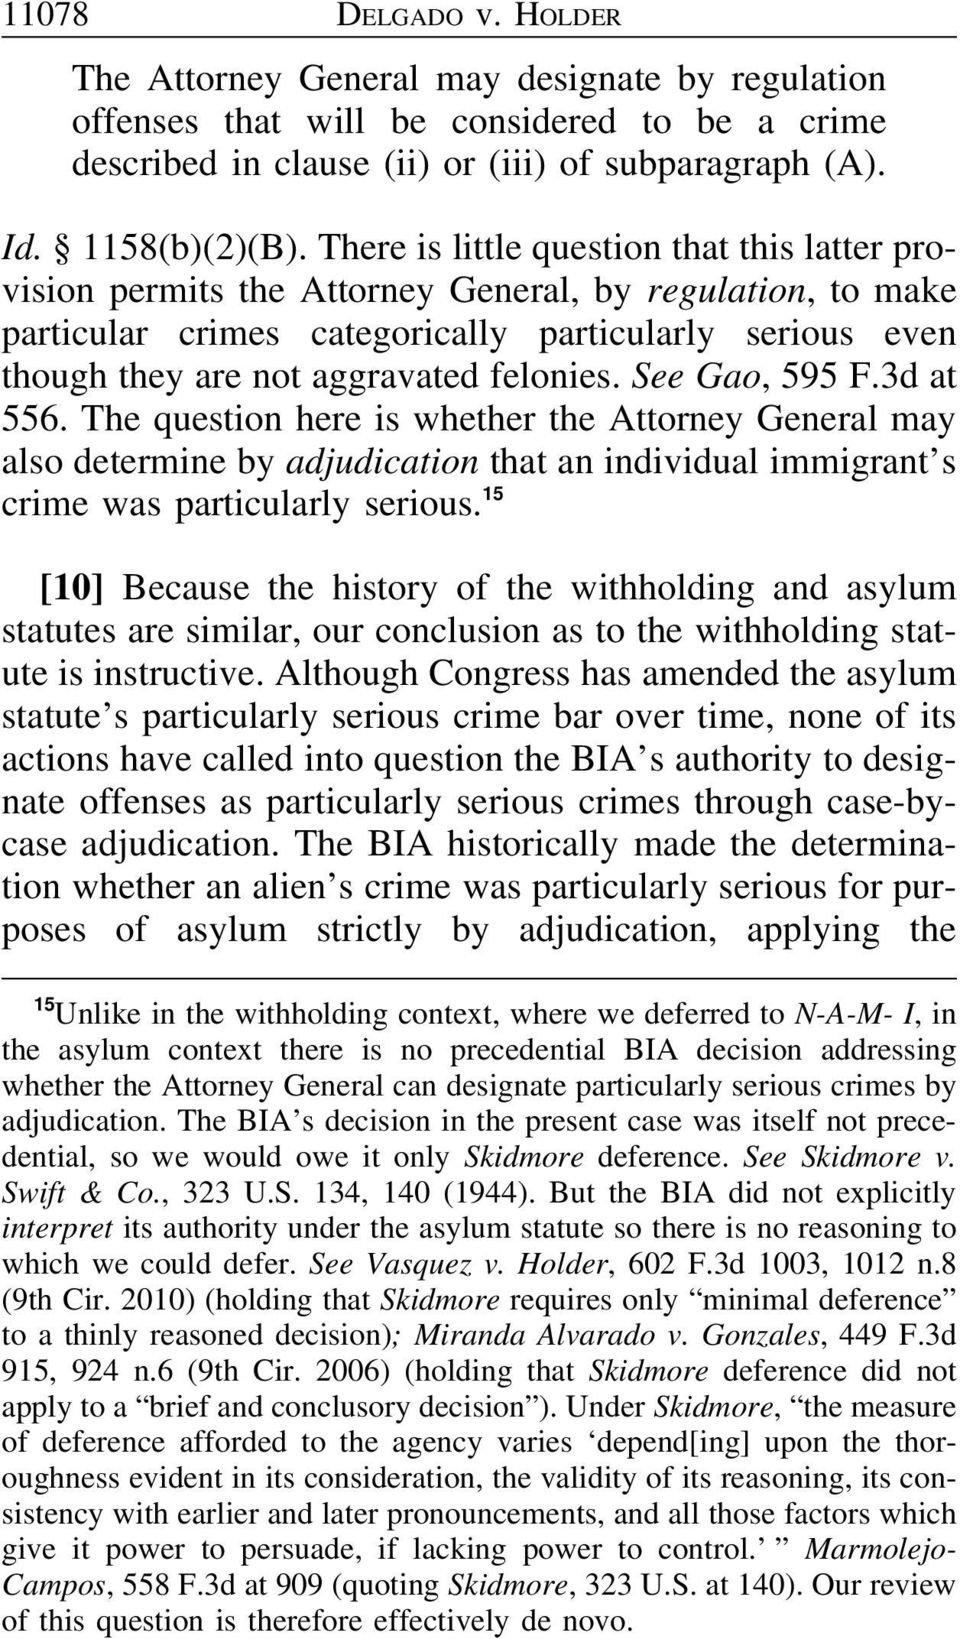 felonies. See Gao, 595 F.3d at 556. The question here is whether the Attorney General may also determine by adjudication that an individual immigrant s crime was particularly serious.